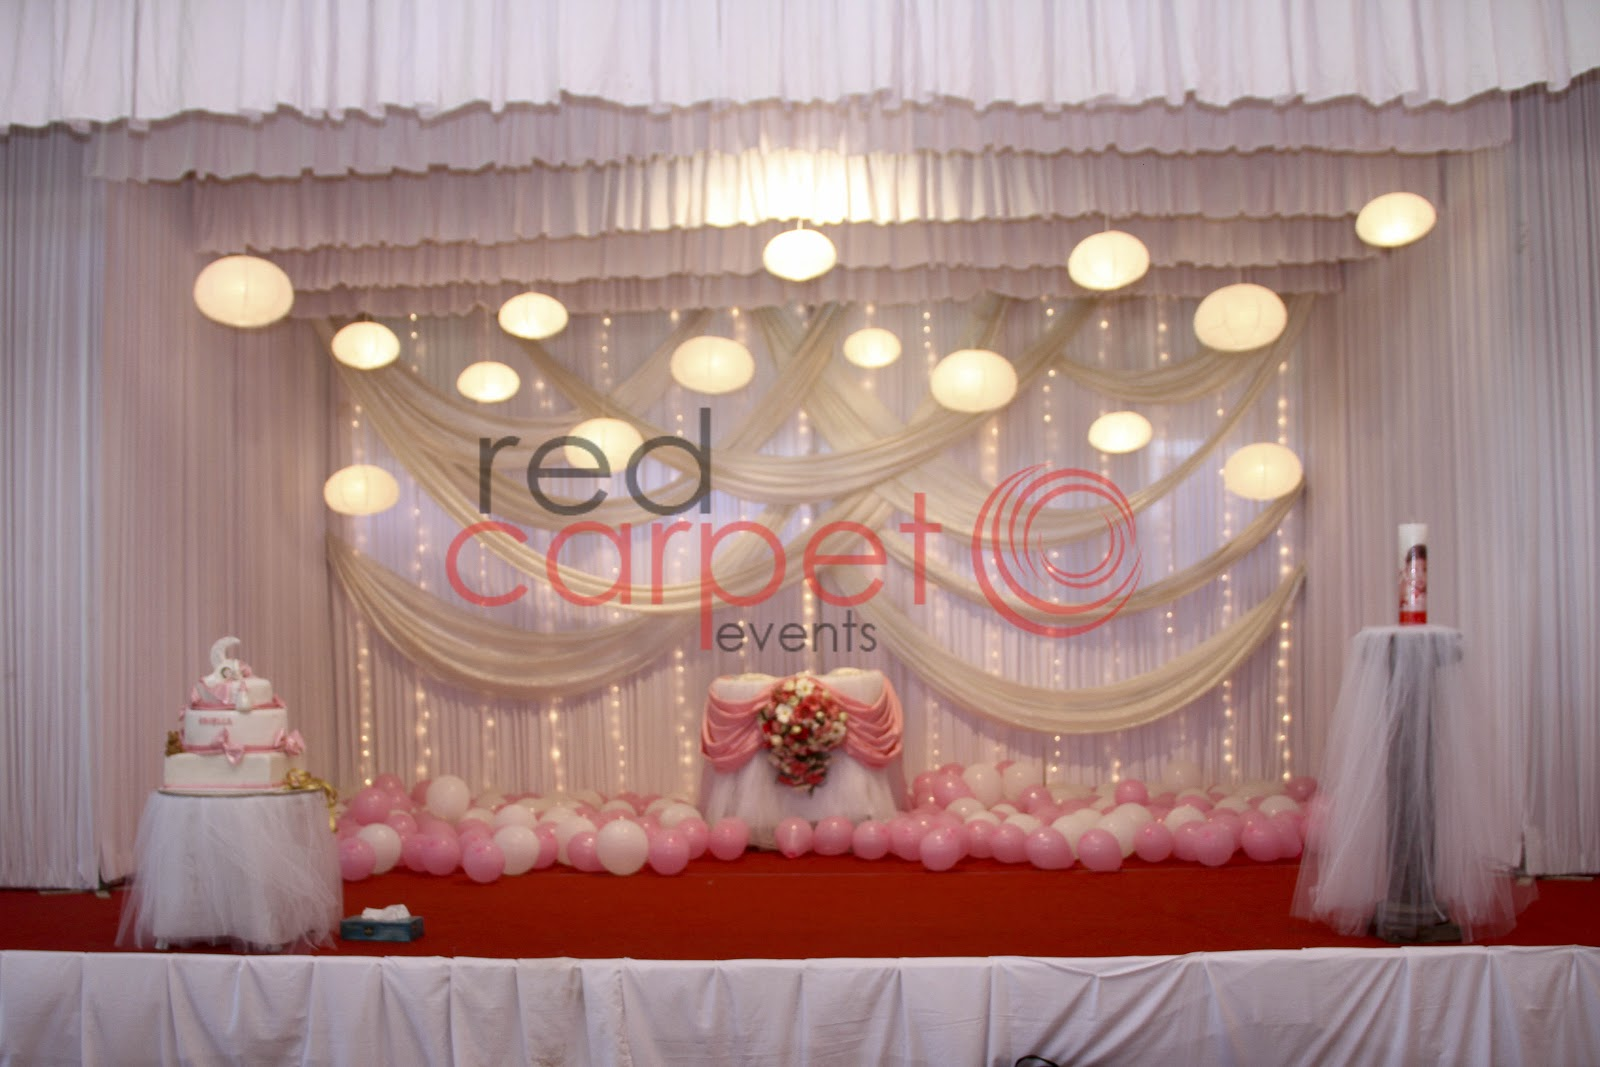 Red carpet events complete event management and wedding for Baby girl baptism decoration ideas